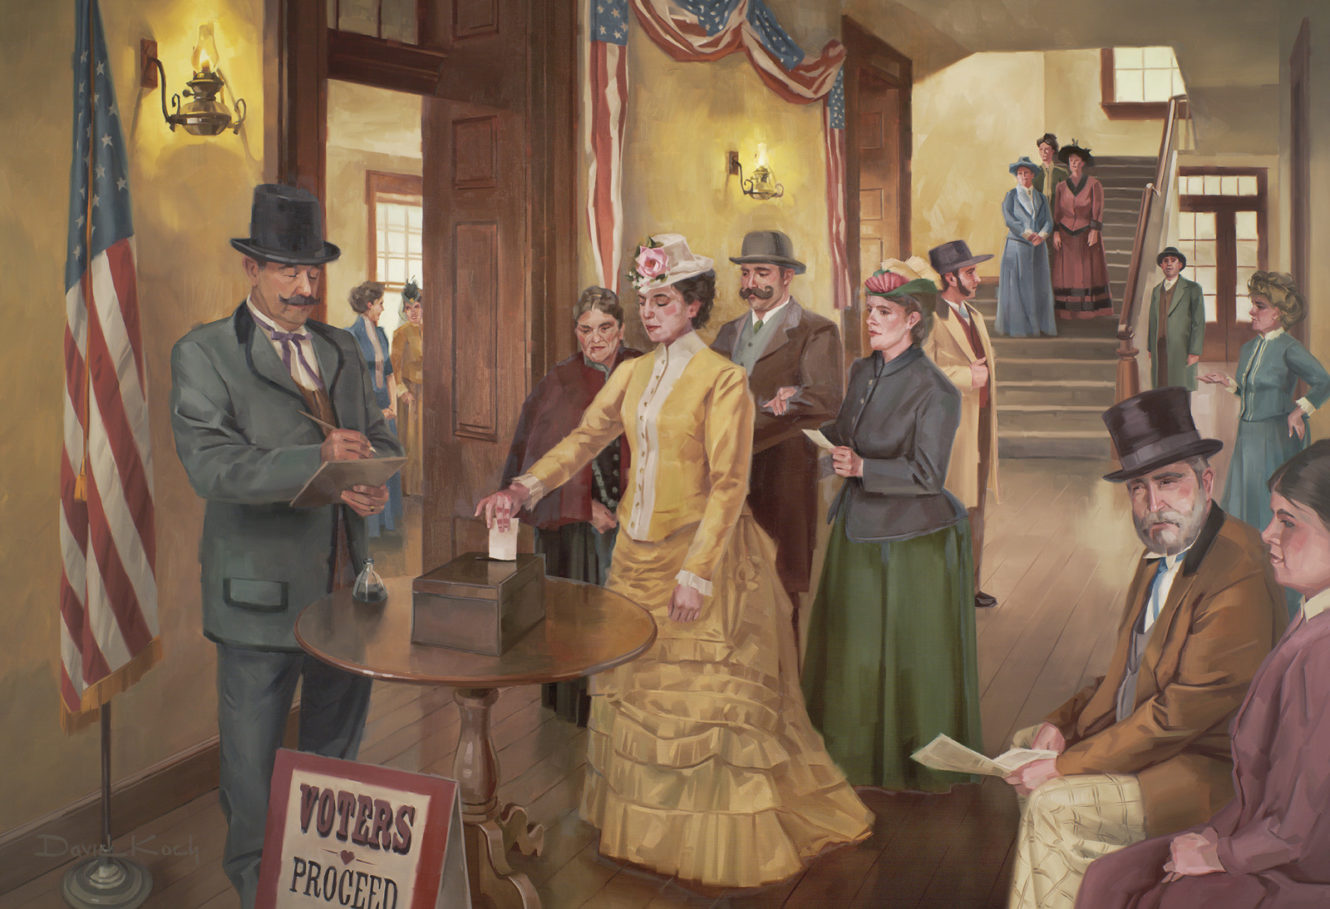 Seraph Young casting the first vote by an American female on Valentine's Day 1870.